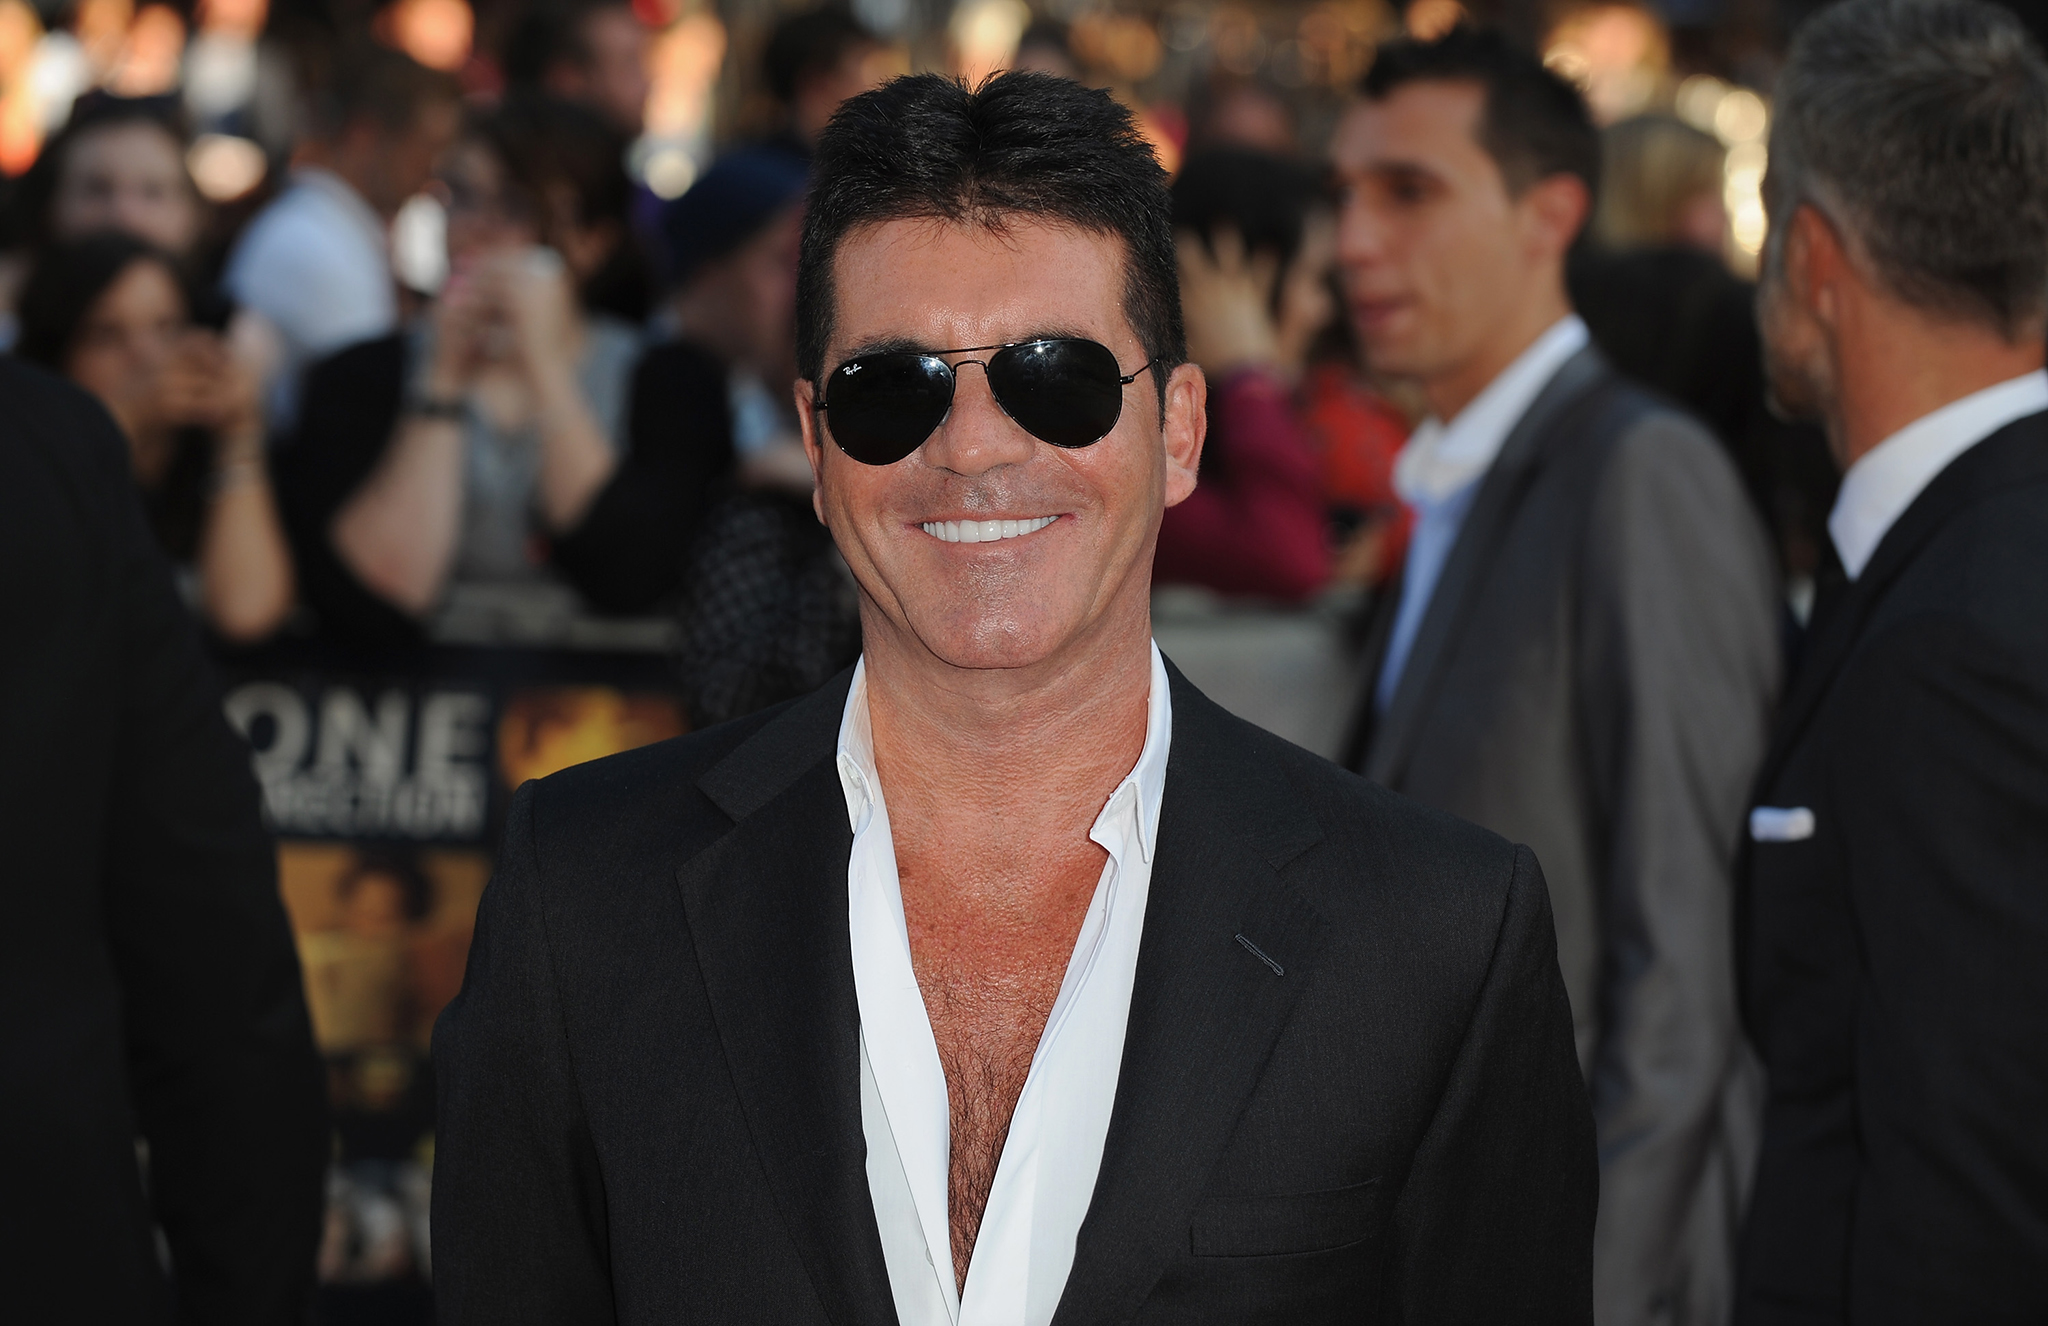 Simon Cowell attends the premiere of 'One Direction: This Is Us' in London (WireImages)